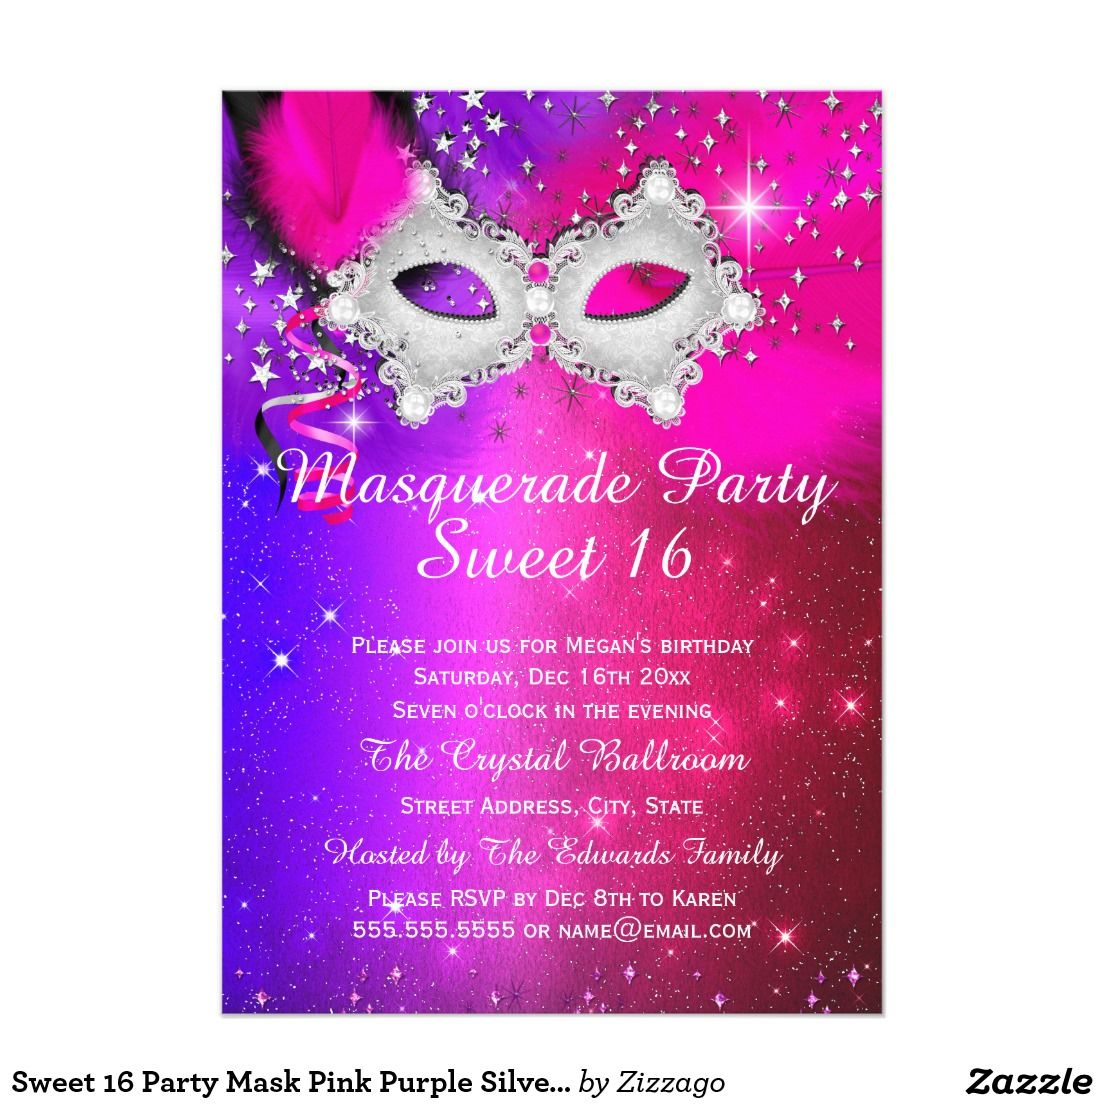 Sweet 16 Party Mask Pink Purple Silver Masquerade Invitation